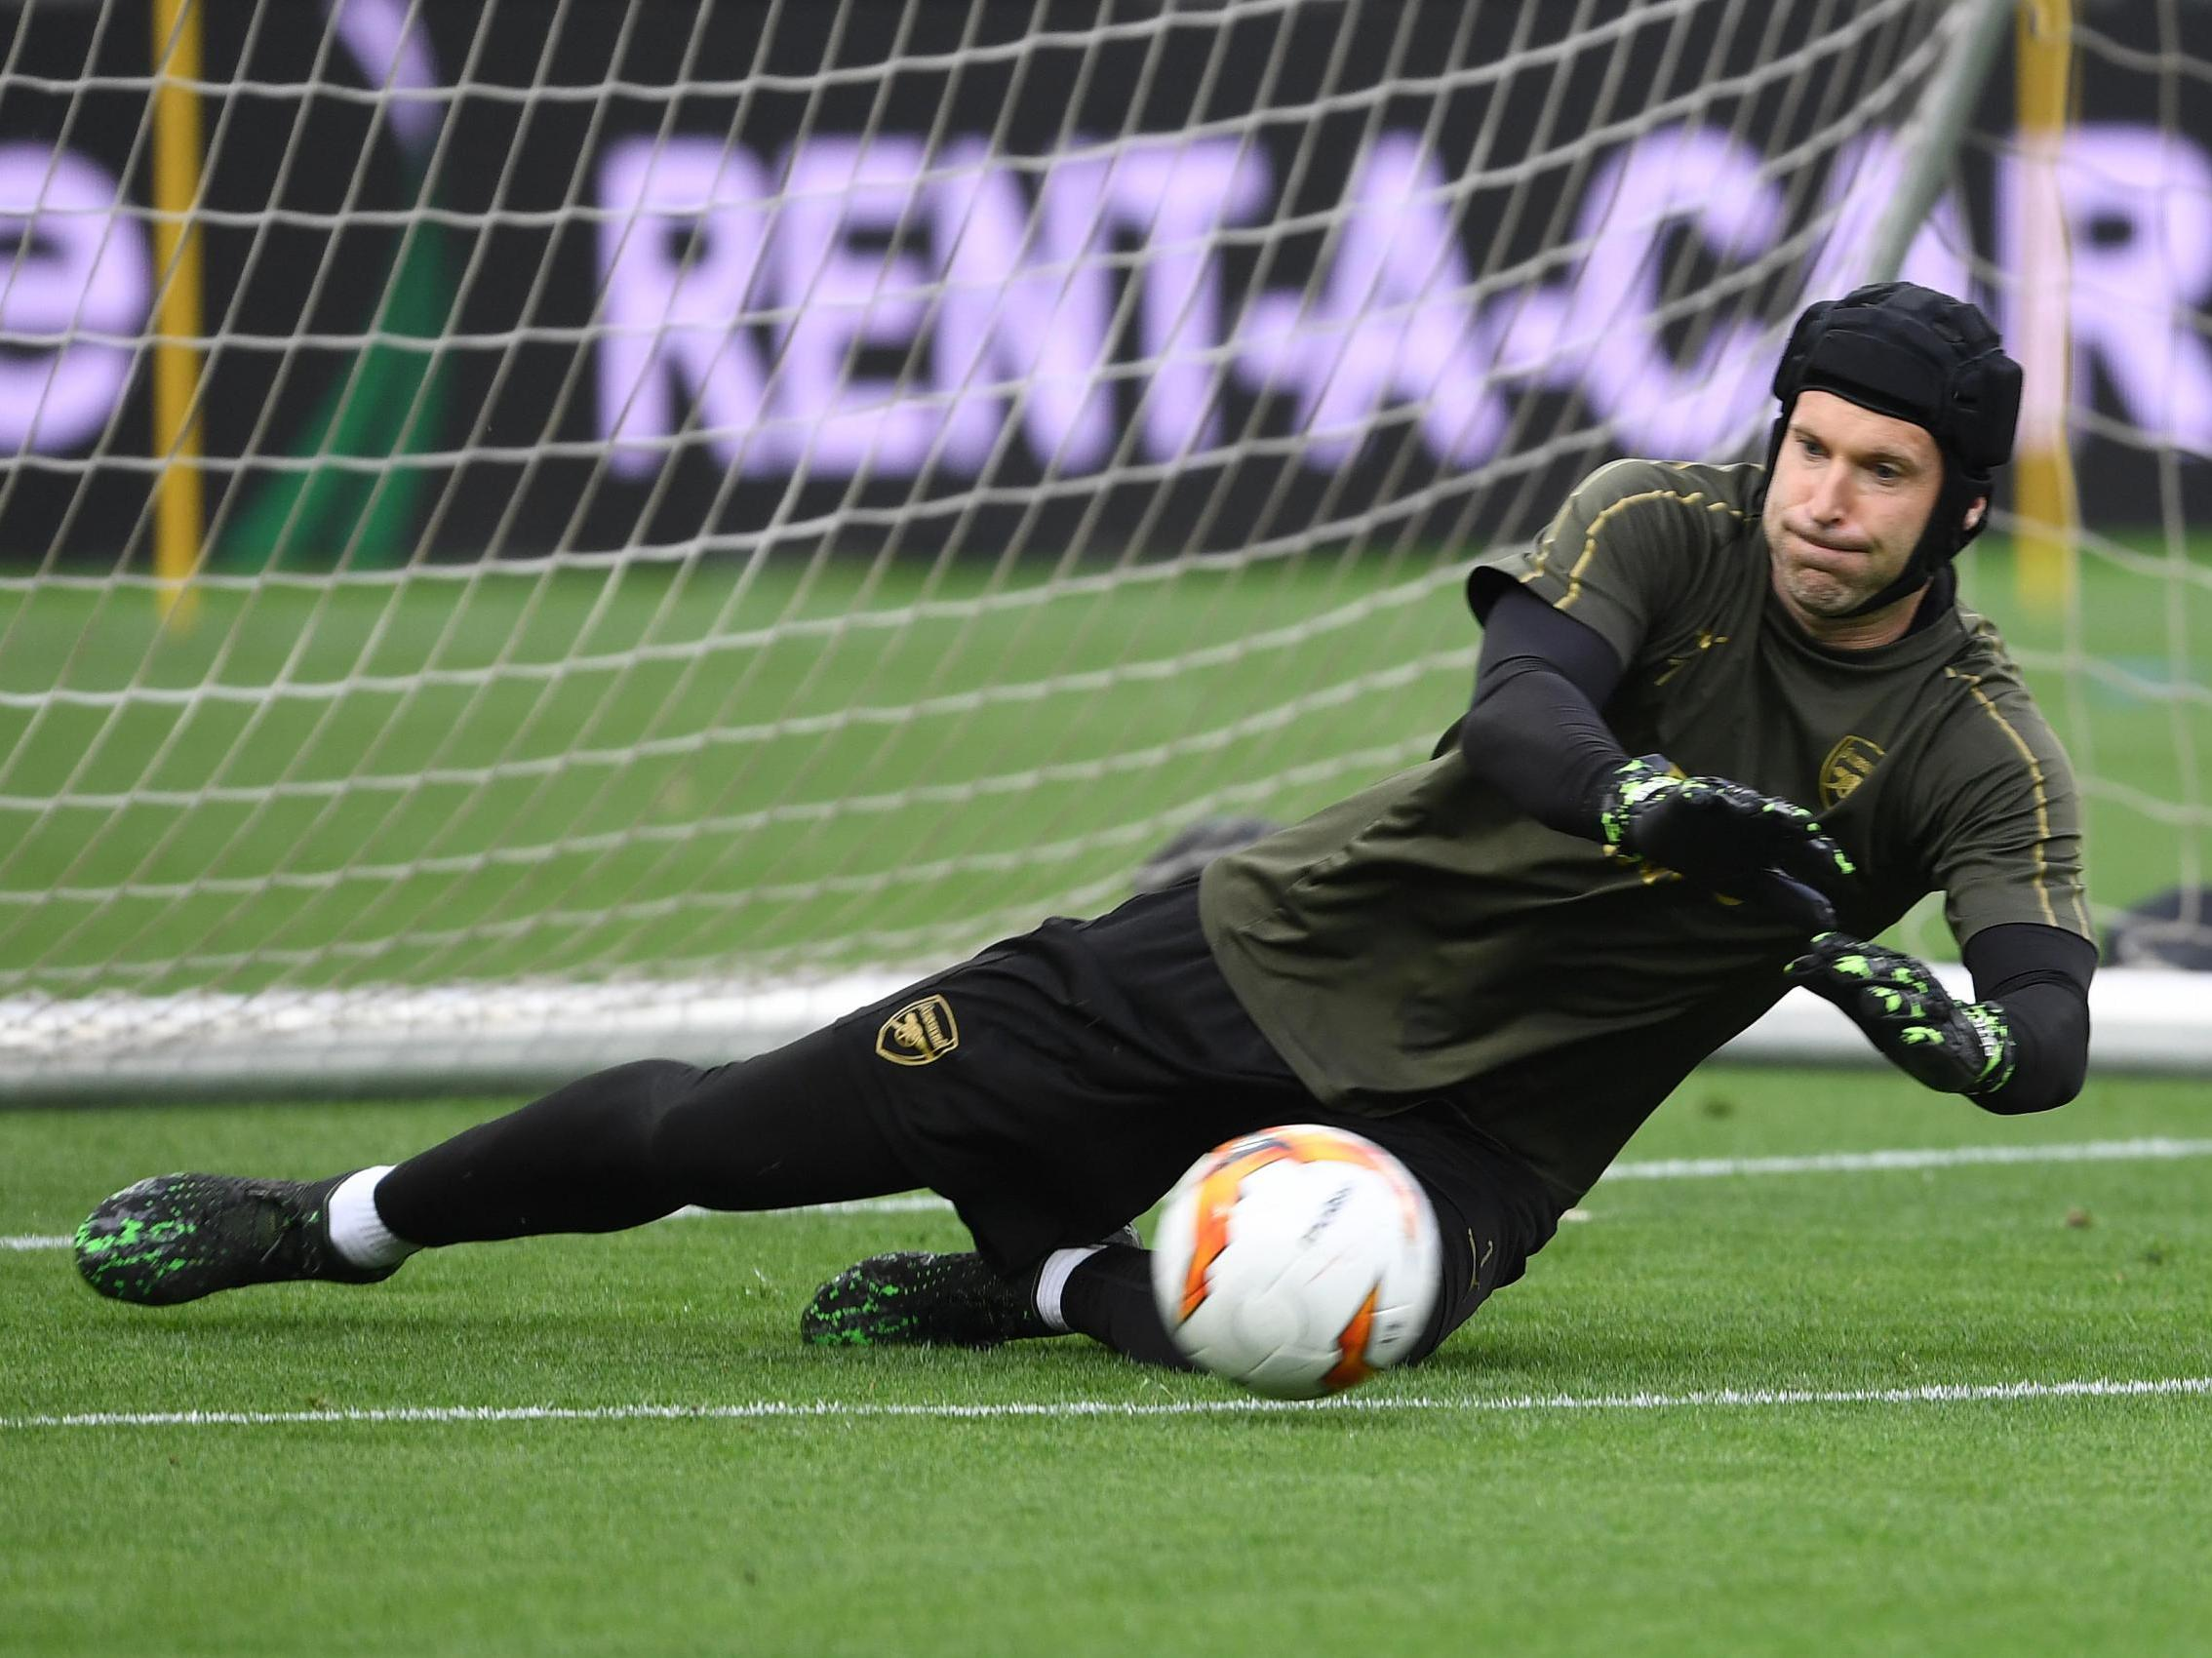 d9154cb3769 Petr Cech - latest news, breaking stories and comment - The Independent